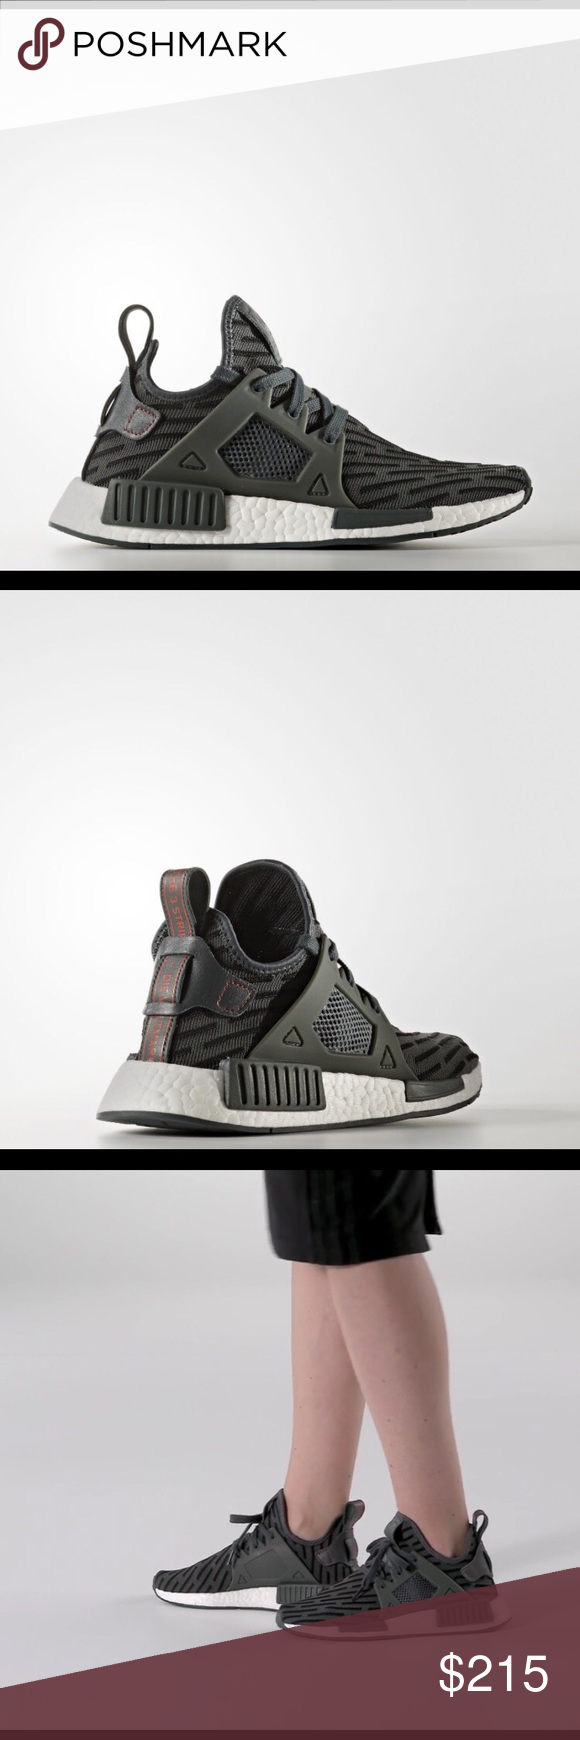 Adidas NMD R1 WOMENS SIZE 8 NEW Women s Adidas Originals NMD XR1 W Utility  Ivy Core 8f491d268c